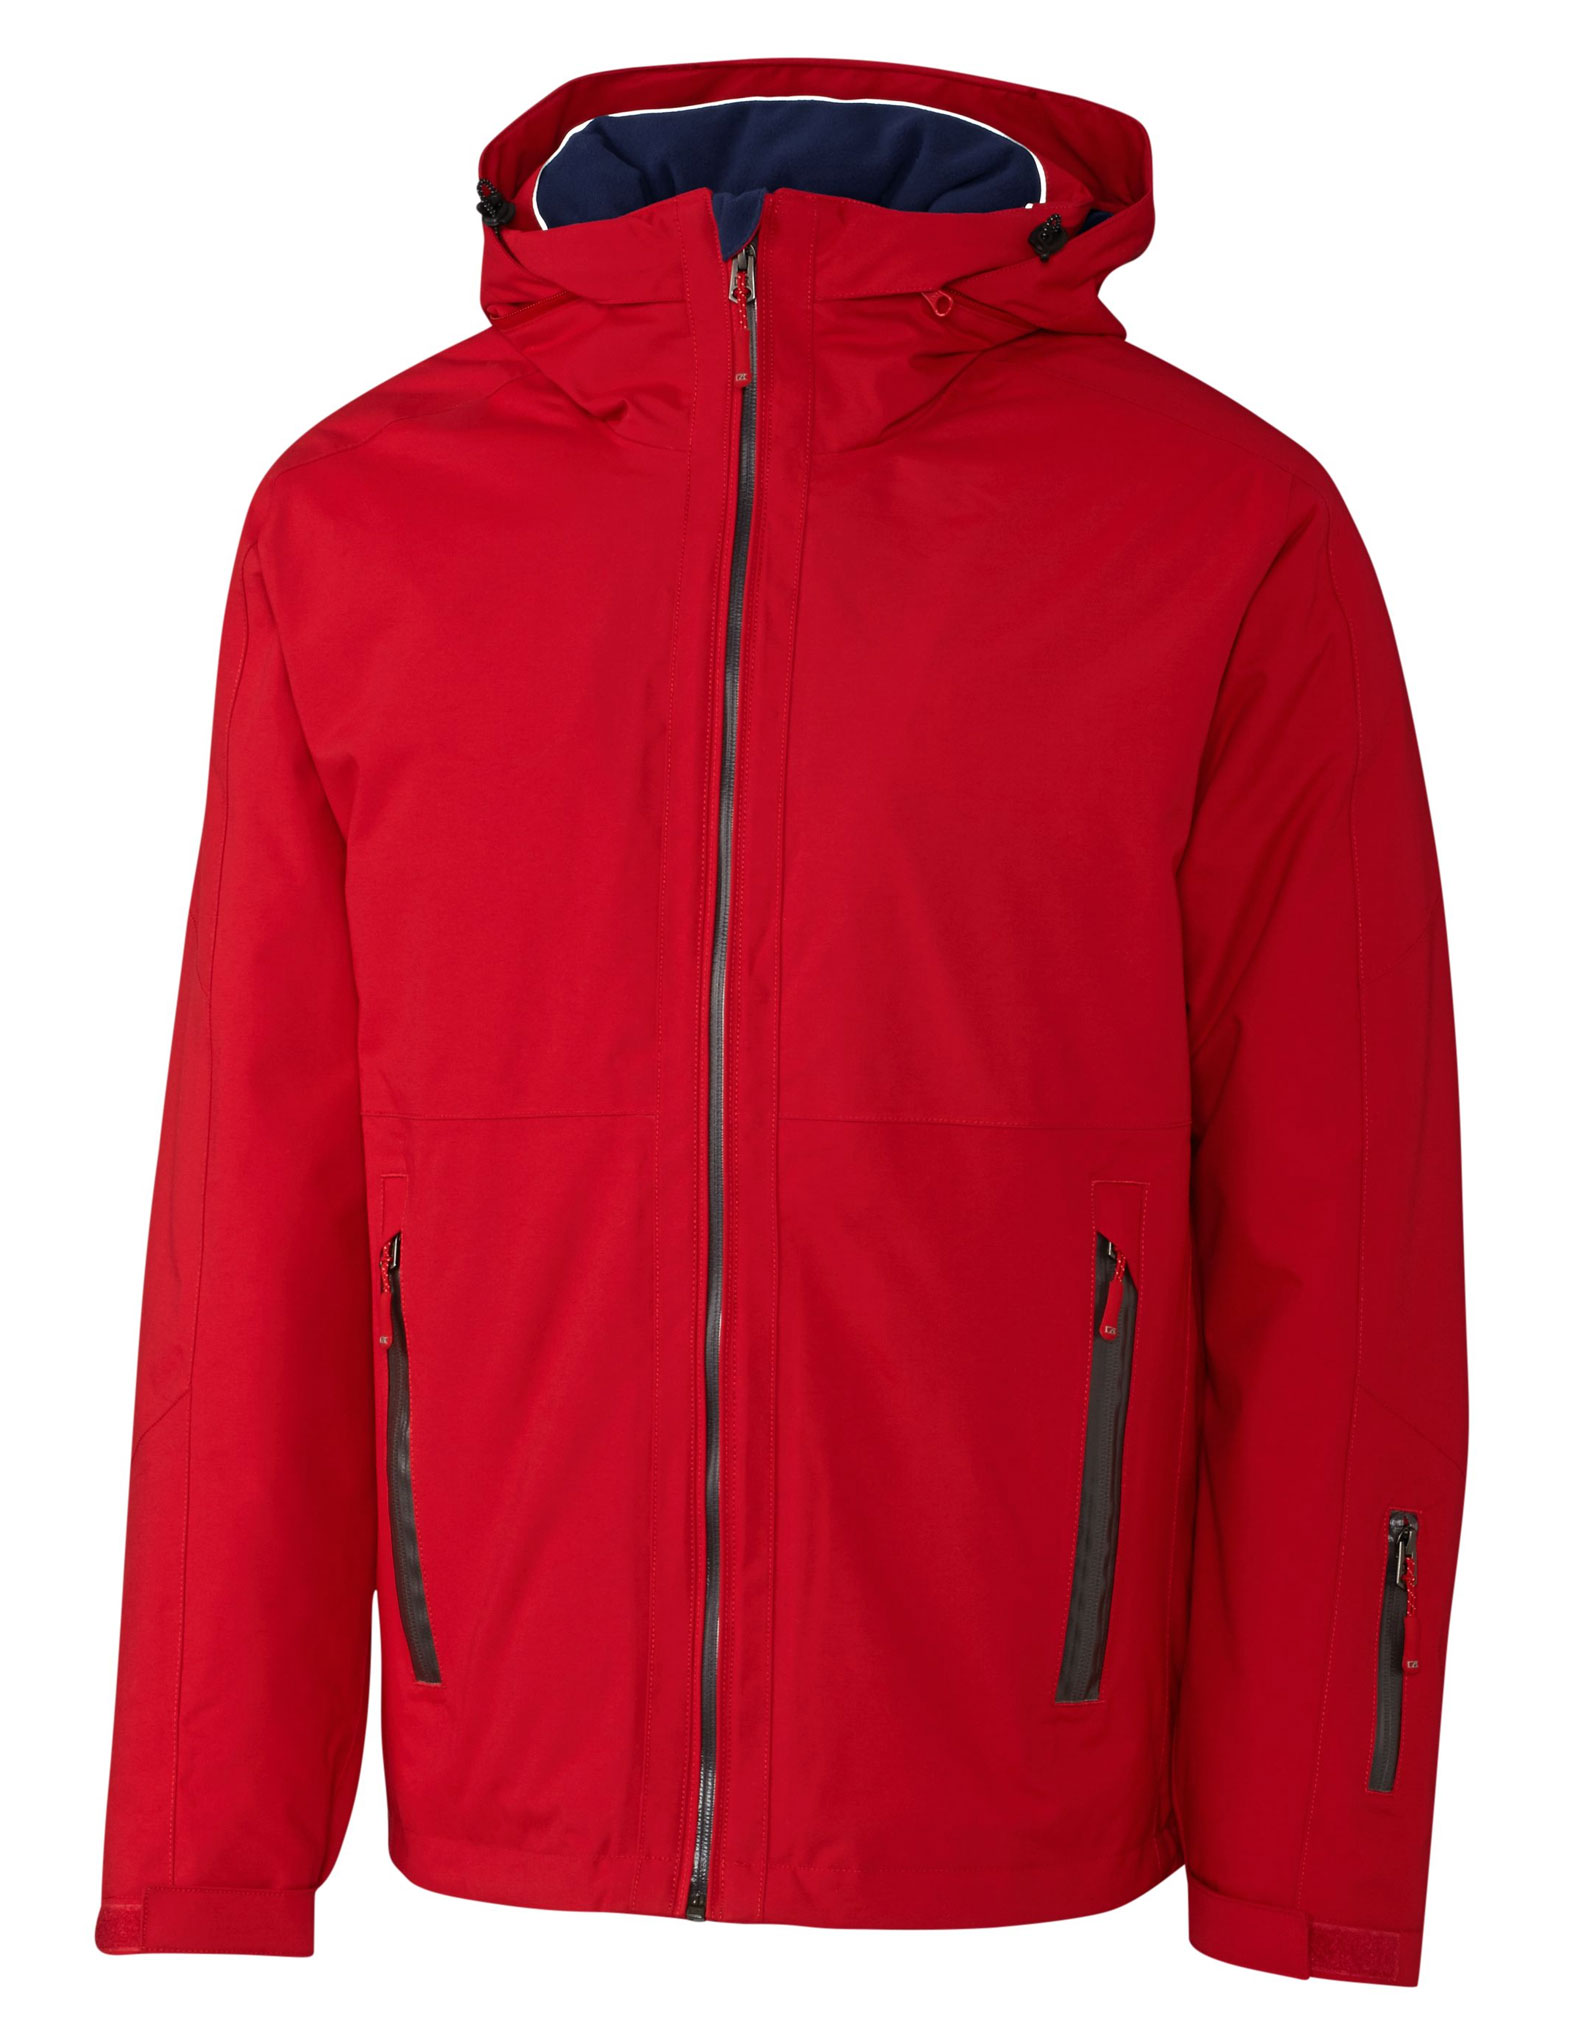 Mens Alpental Jacket